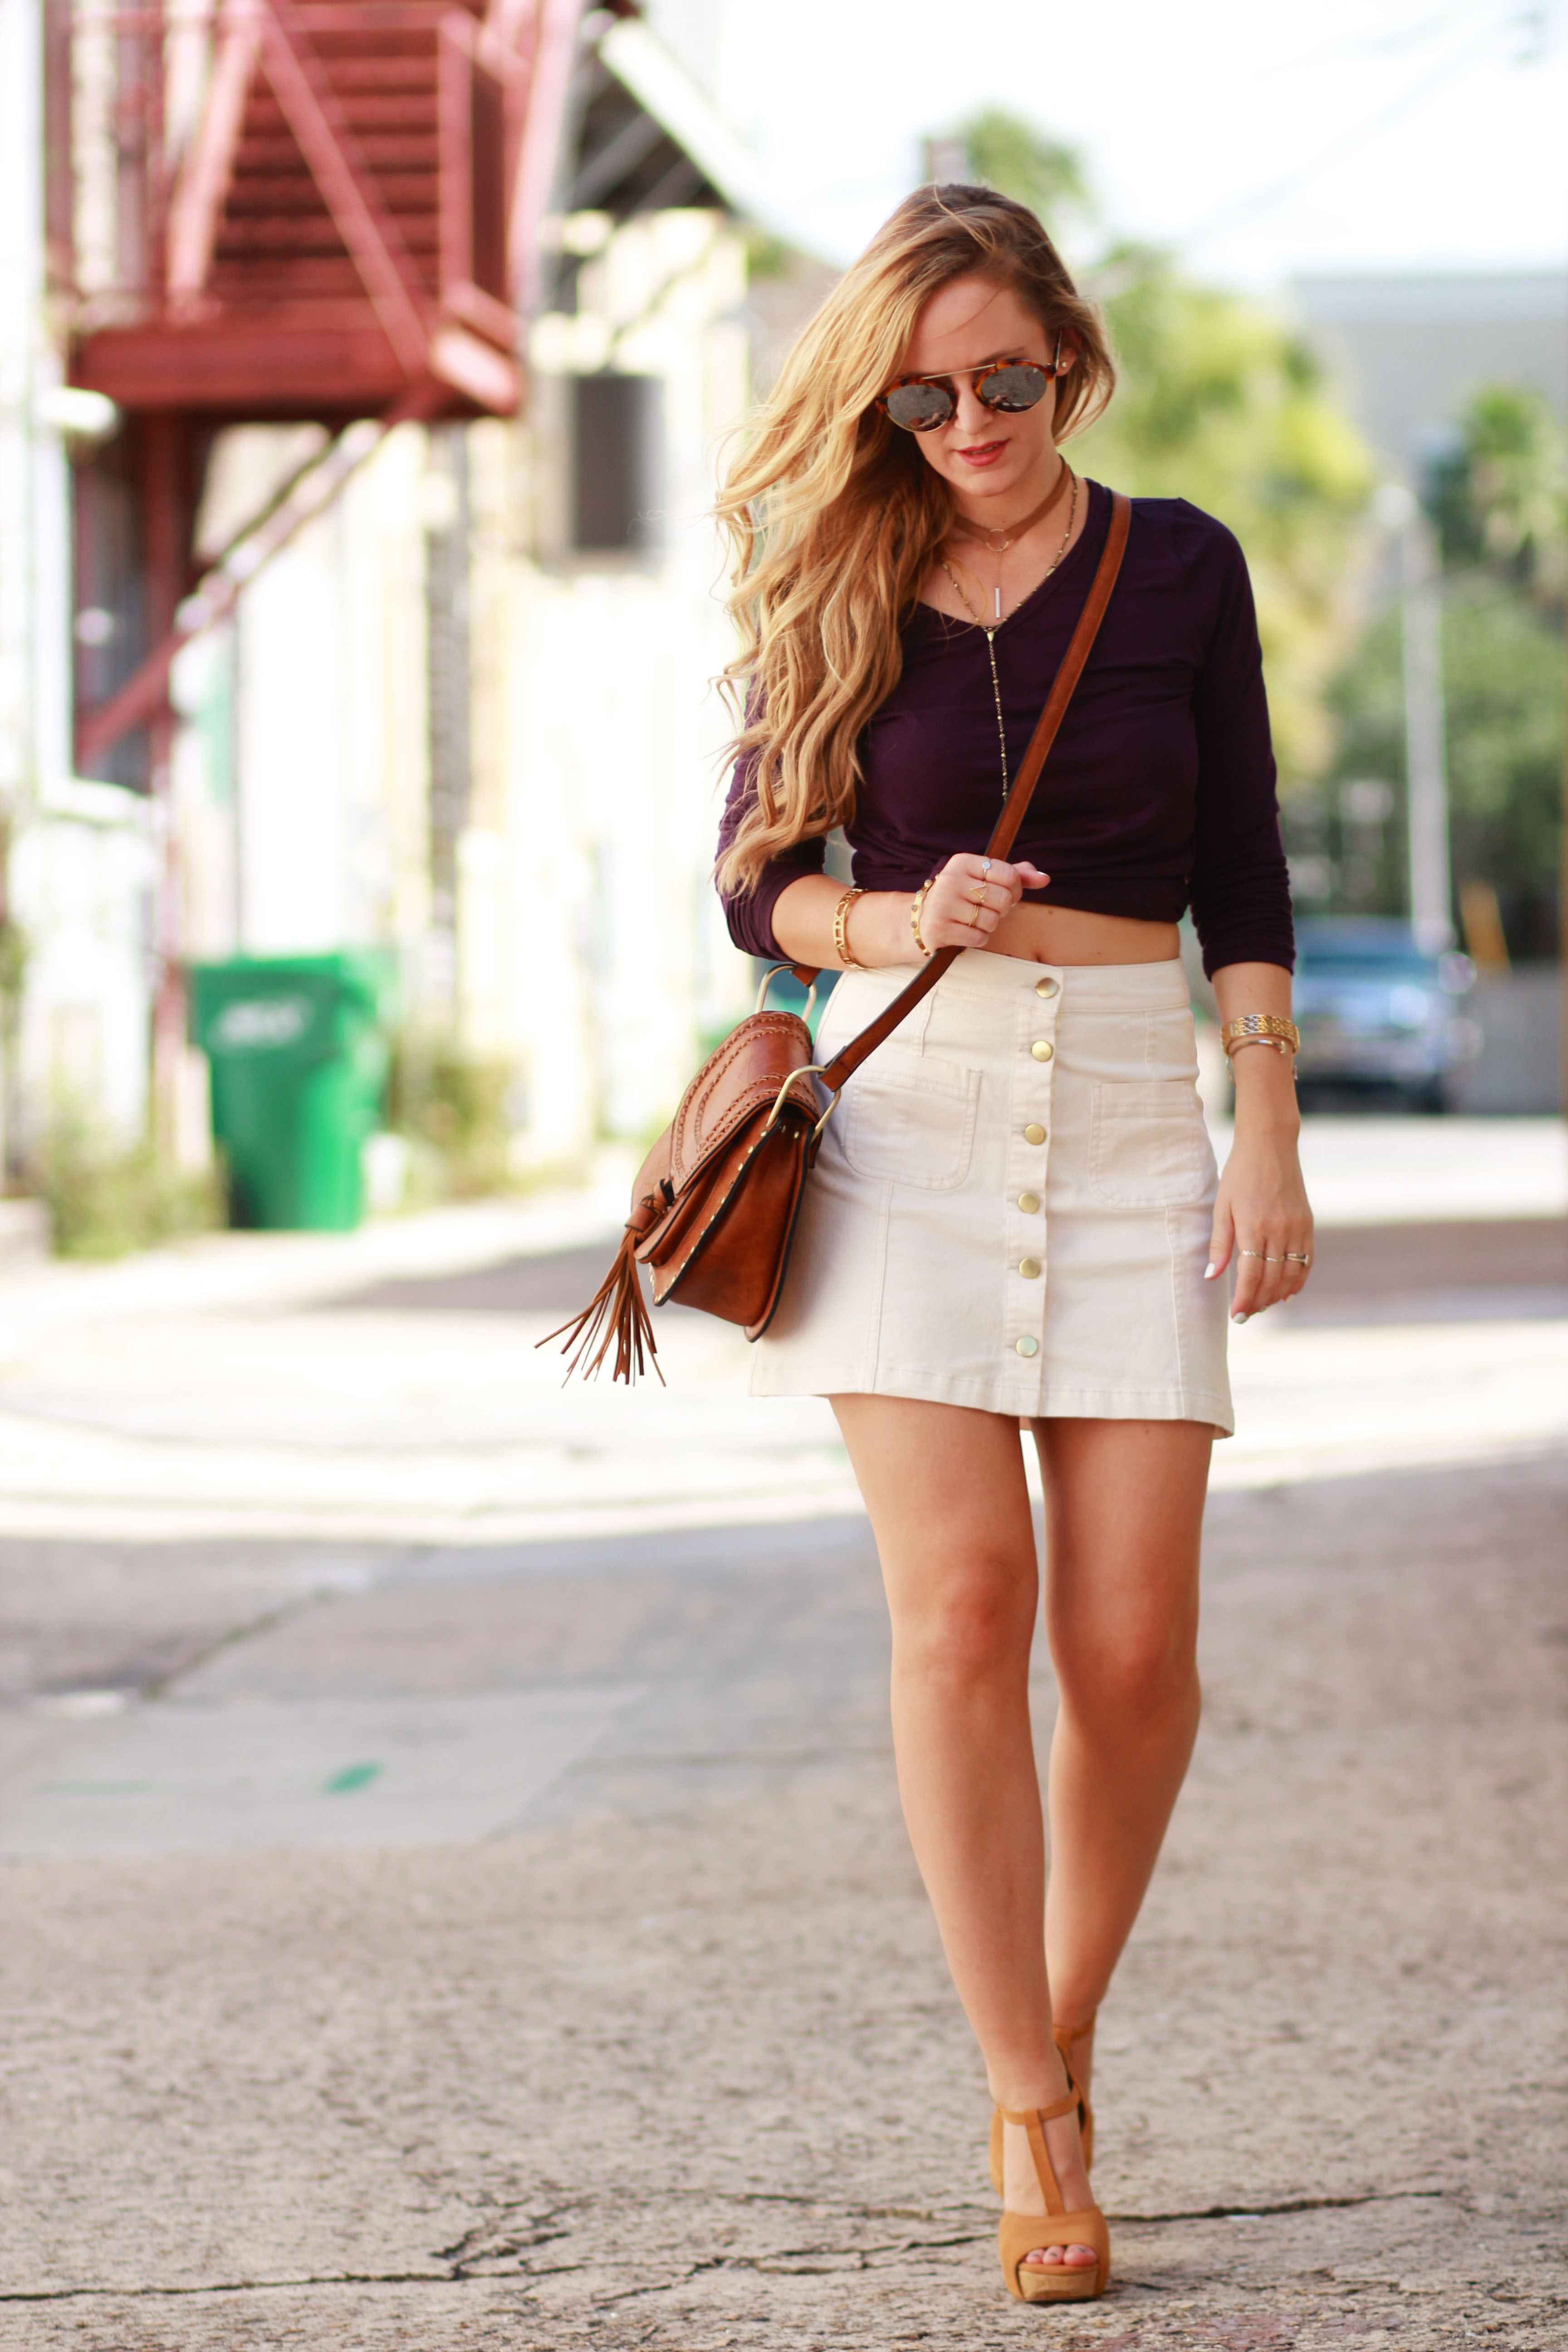 deae712546 Orlando Florida fashion blog styles Summerskin top with H&M button up  skirt, Illestevia aviator sunglasses